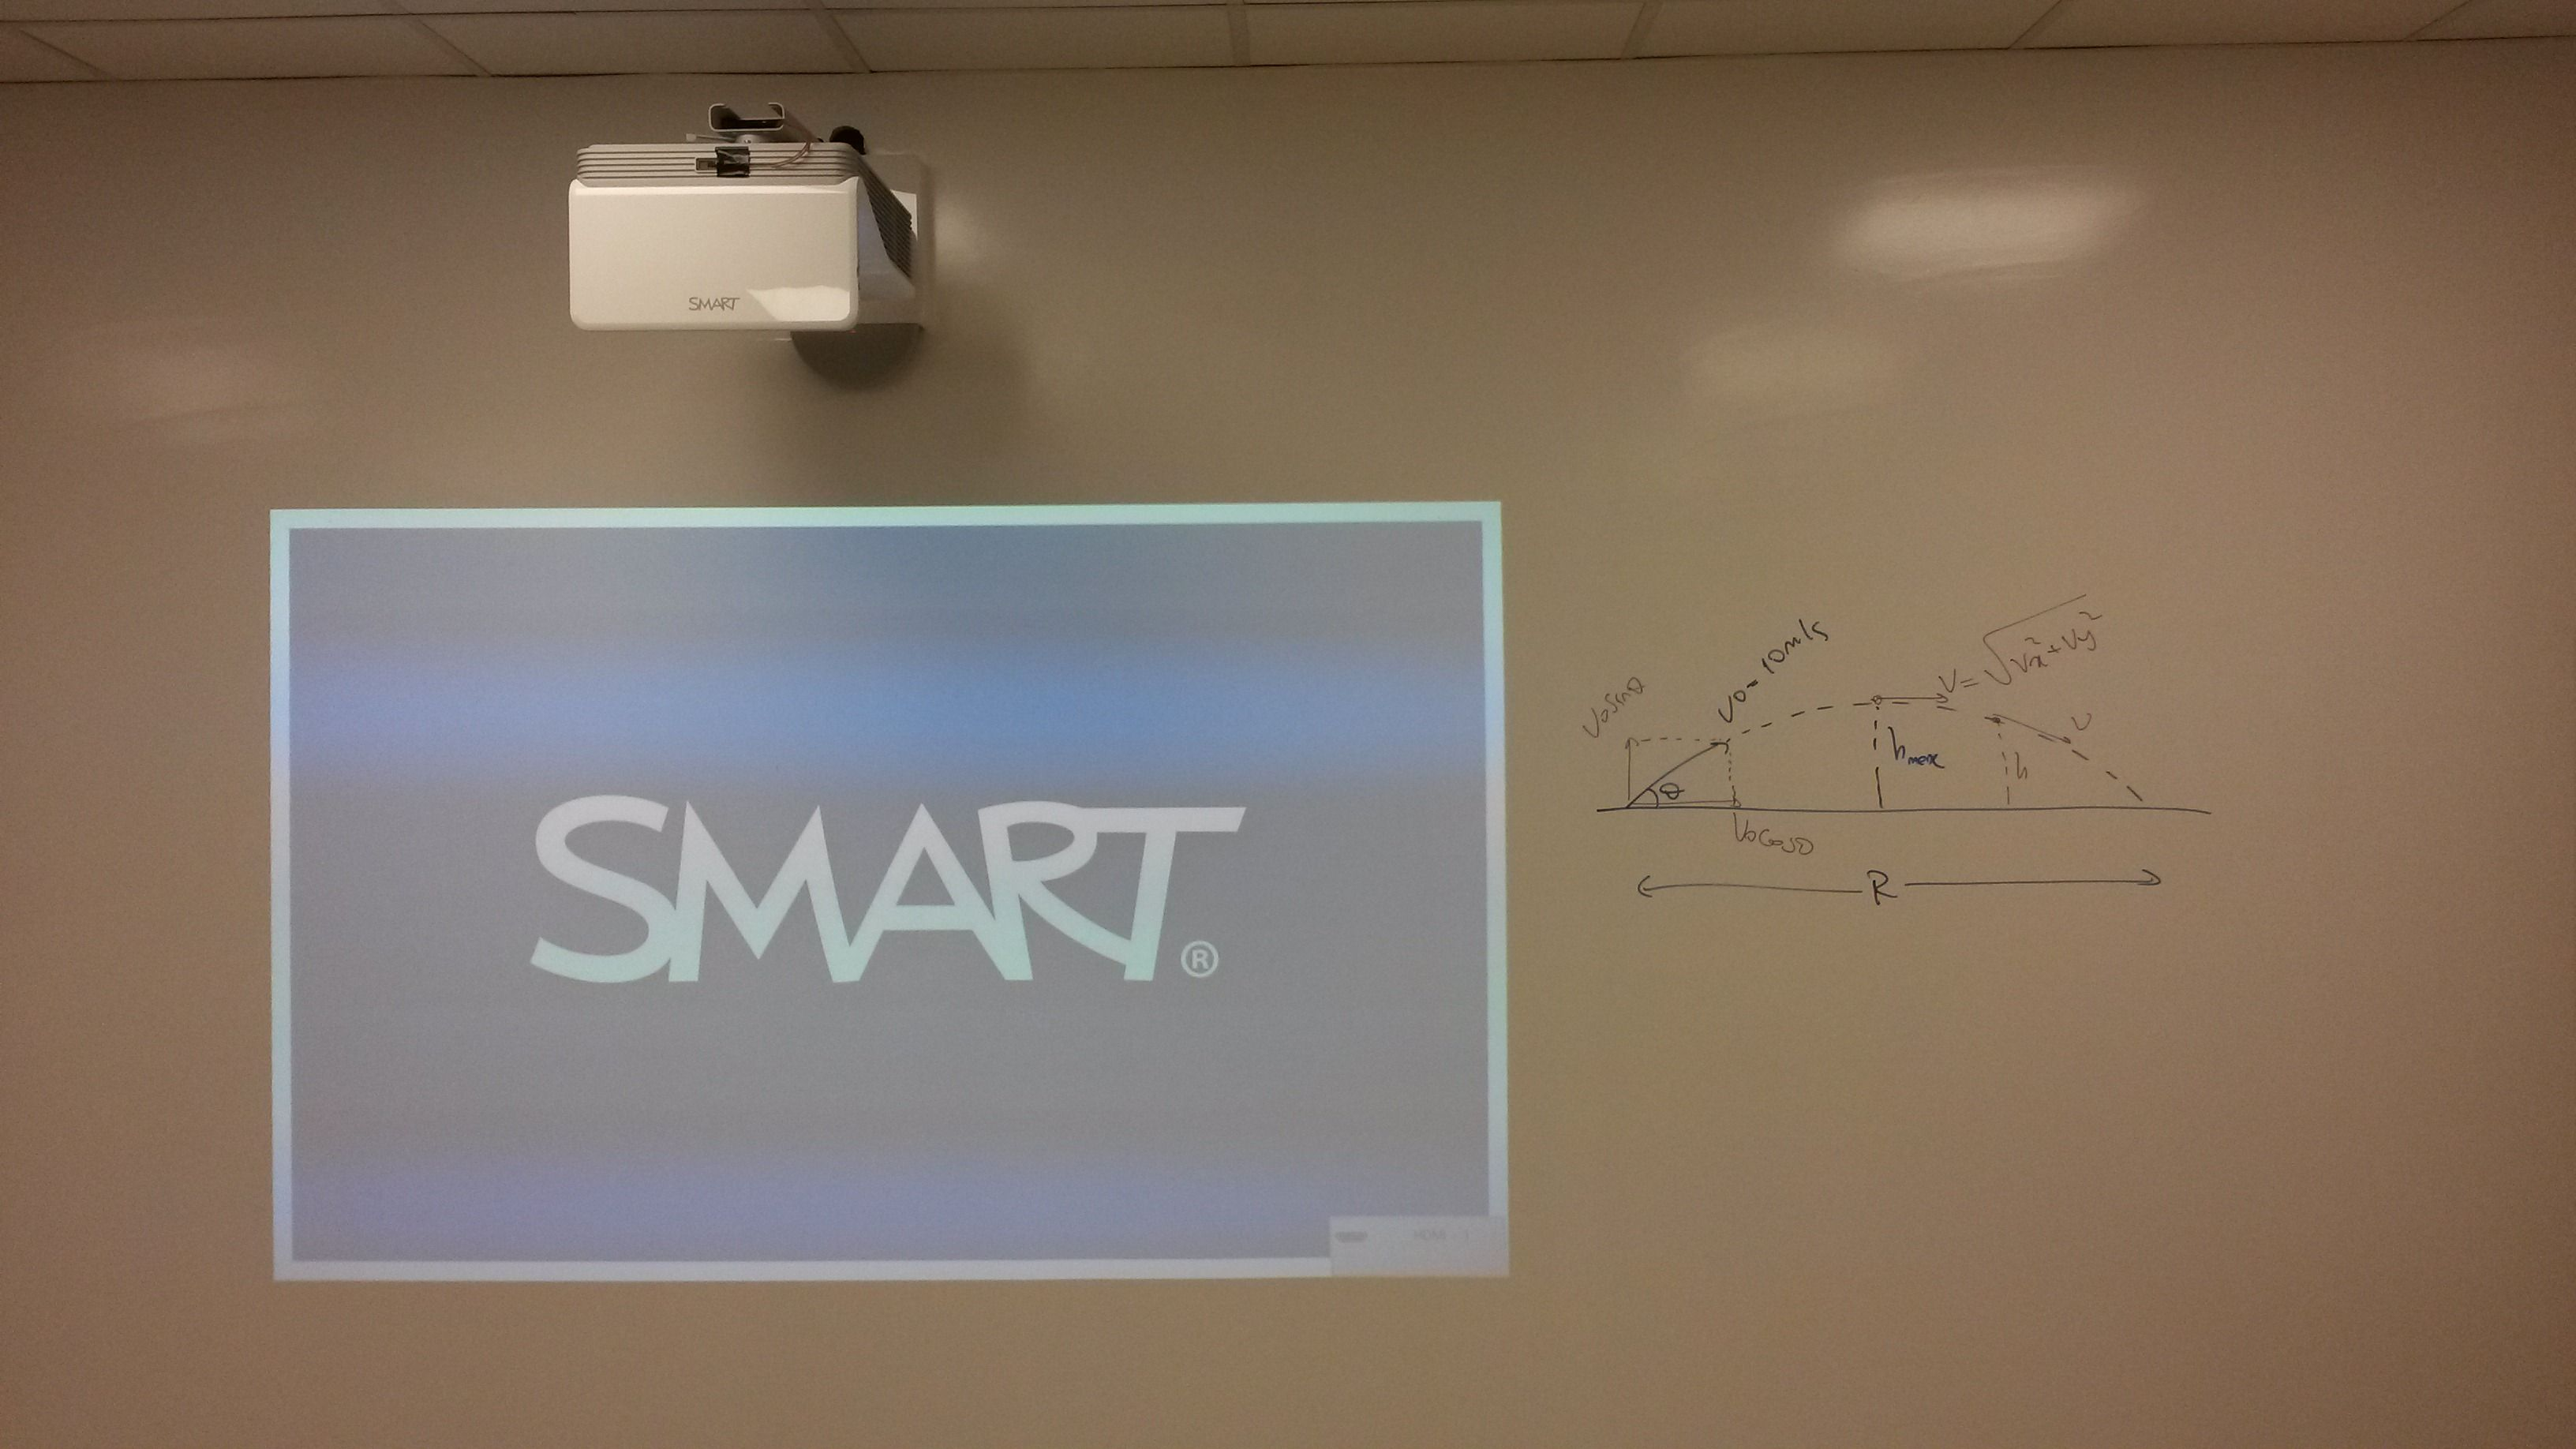 You Can Use A Projector On Whiteboard Paint Dry Erase Board Wall Whiteboard Paint Whiteboard Wall